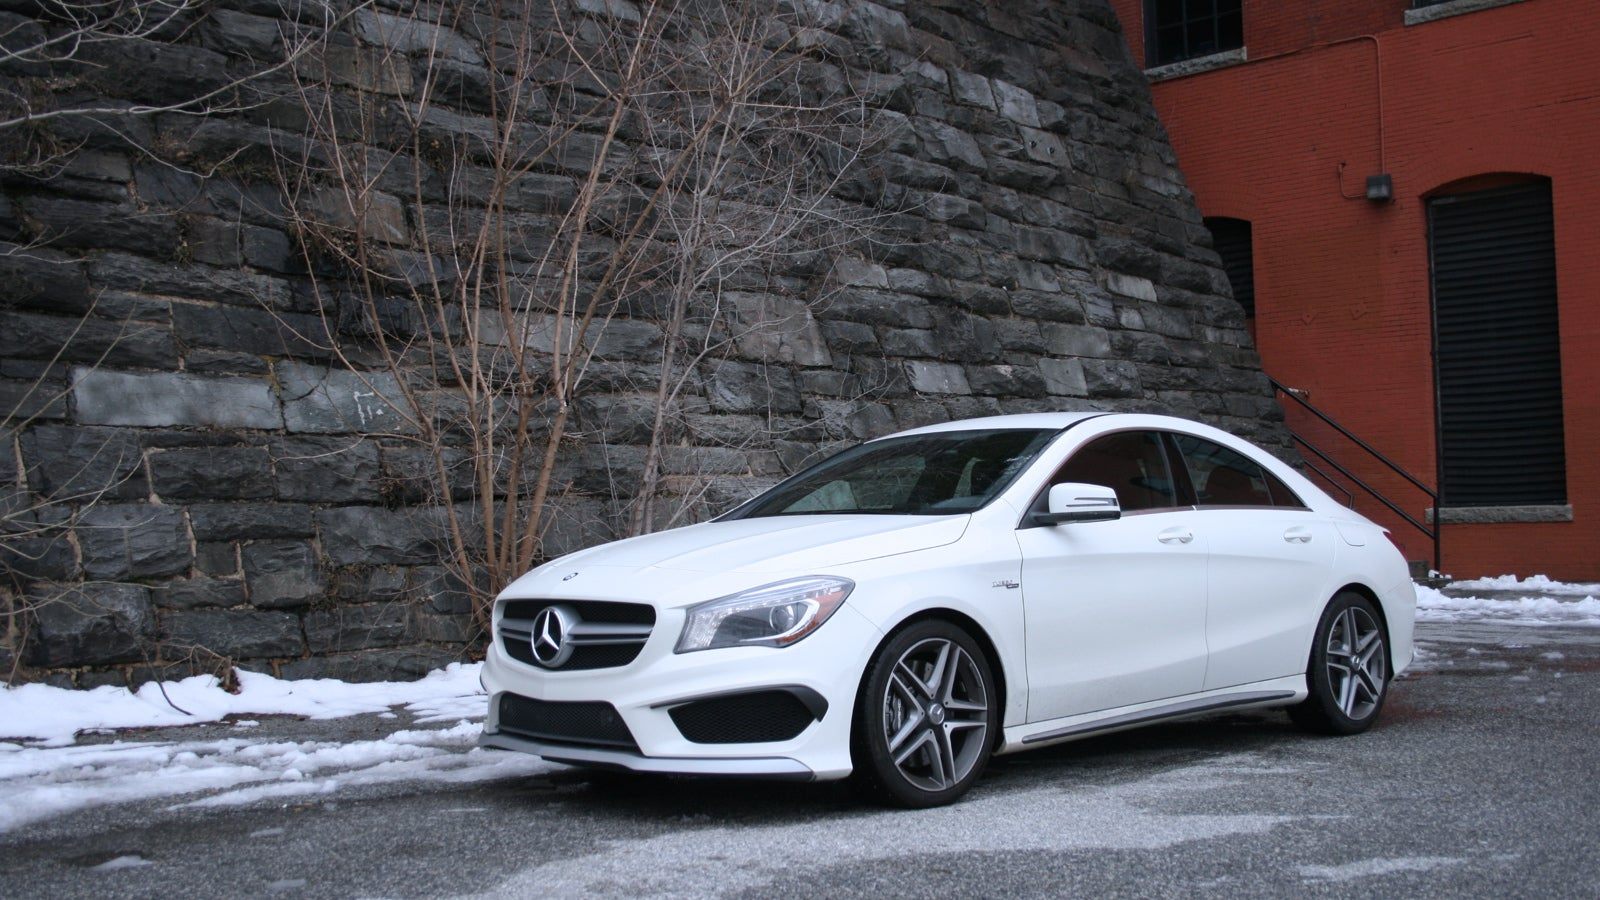 2014 mercedes benz cla45 amg the jalopnik review for Mercedes benz c45 amg